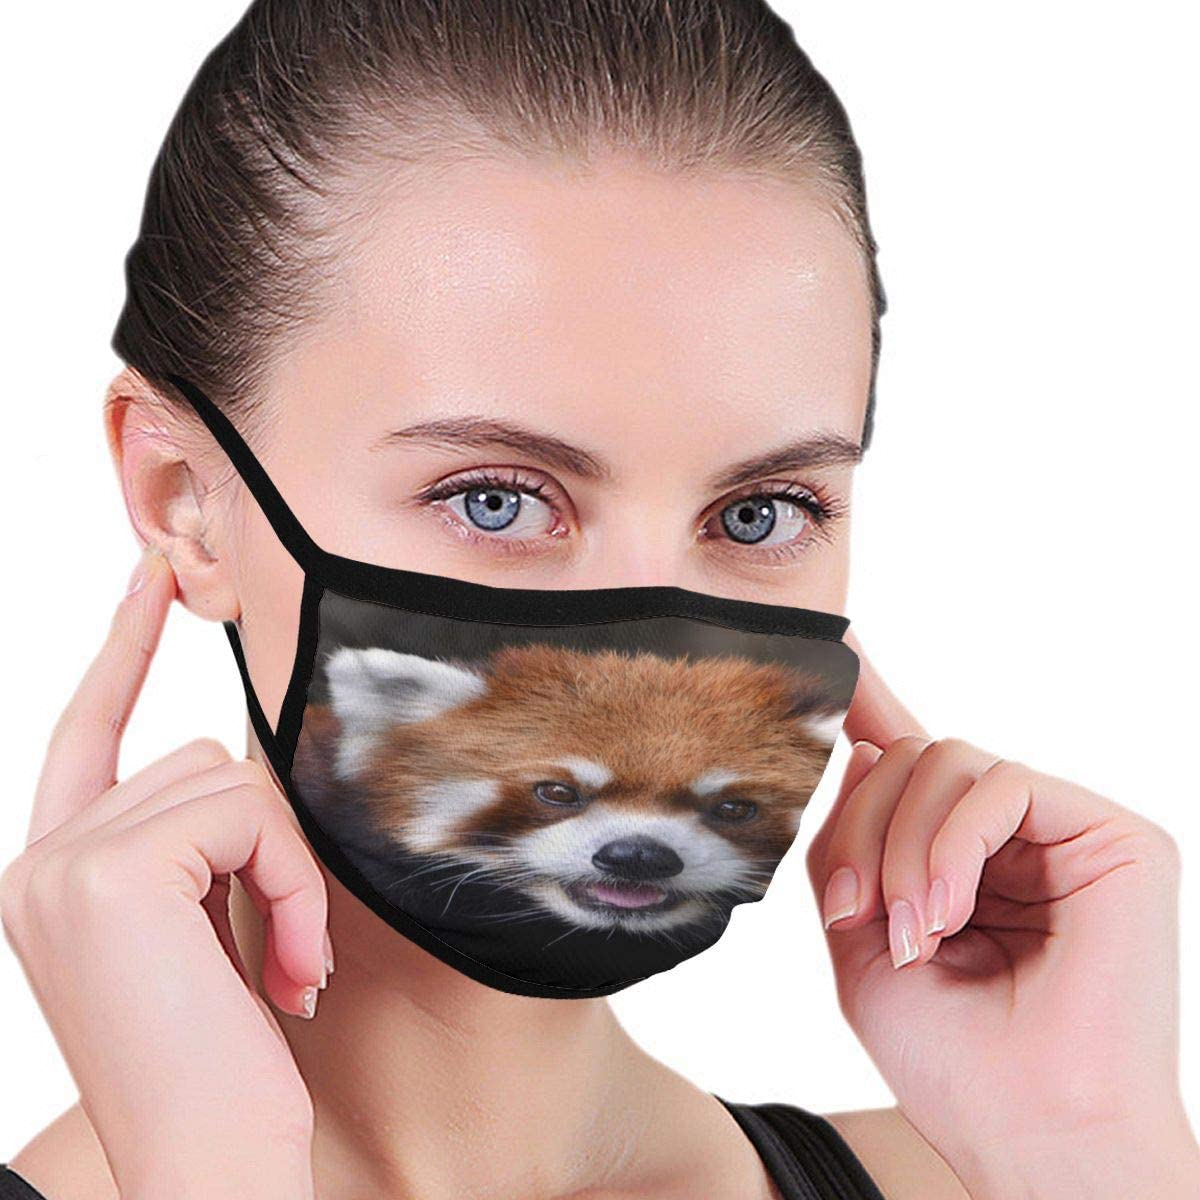 Doumku Mouth Cover Special Red Panda Dust Breathable Reusable Ear Loop Mouth Protection Cover For Men Women